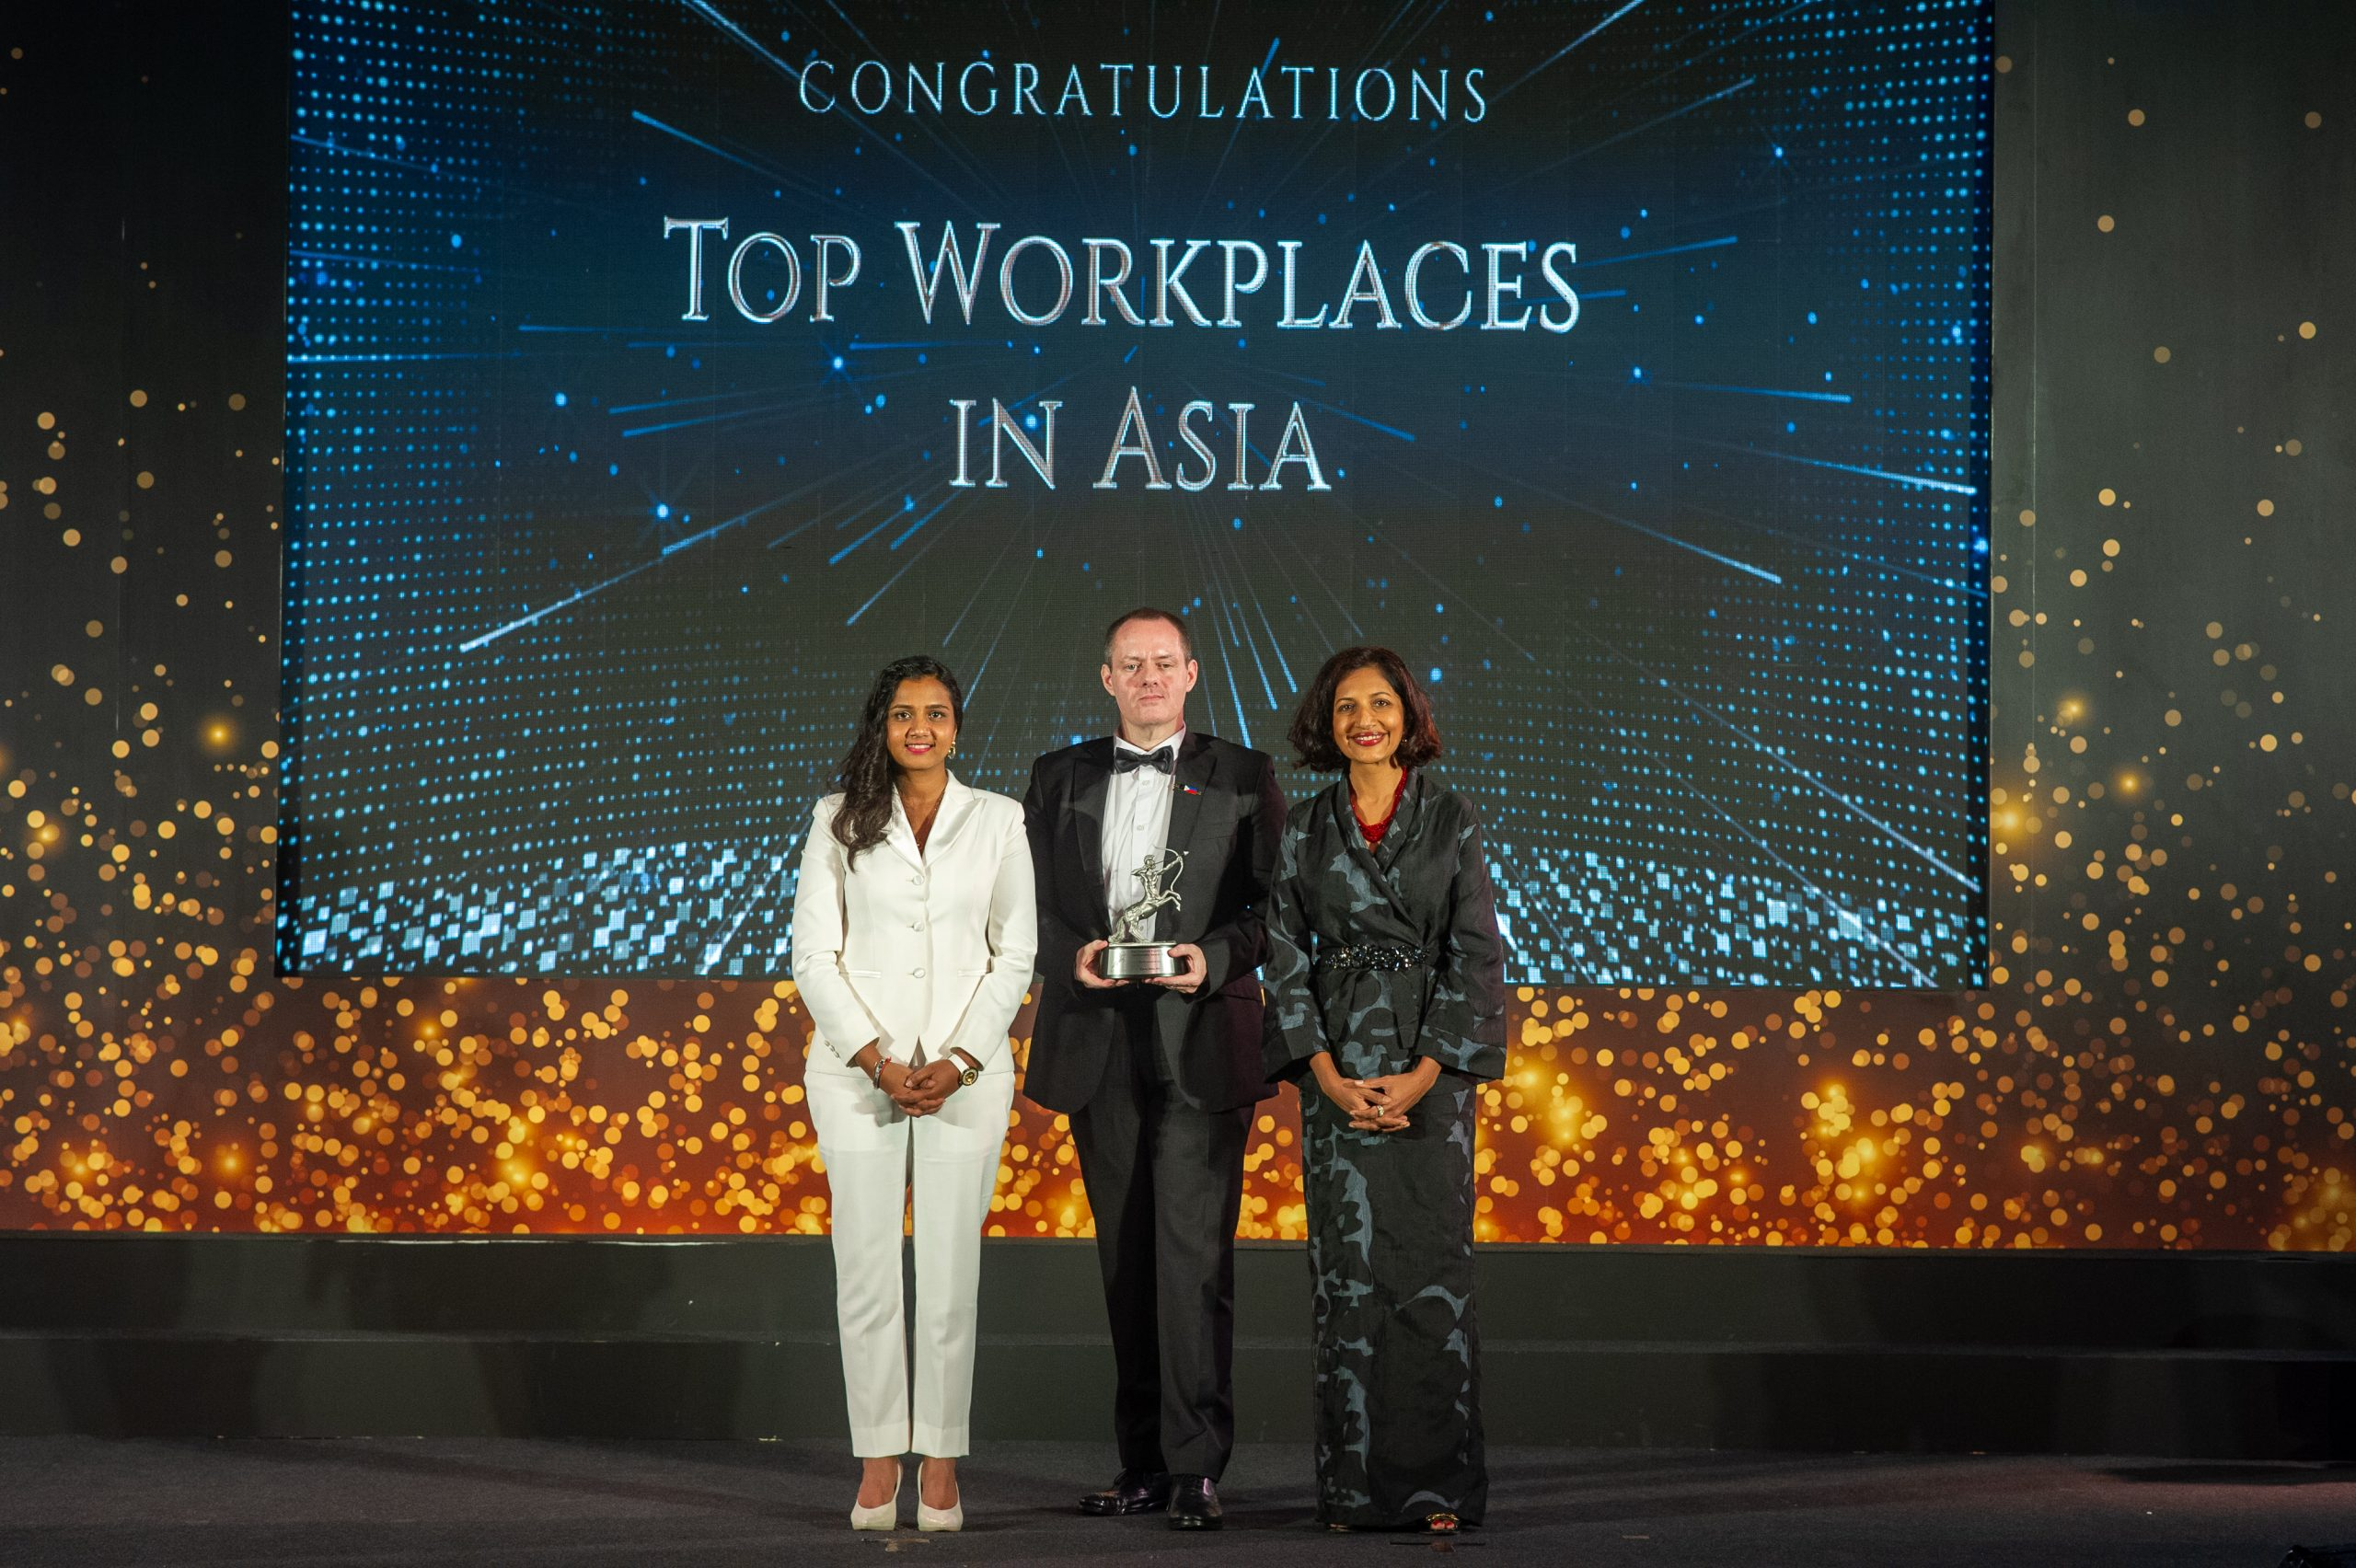 SYKES Sets the Bar for Global Excellence as one of the Top Workplaces in Asia